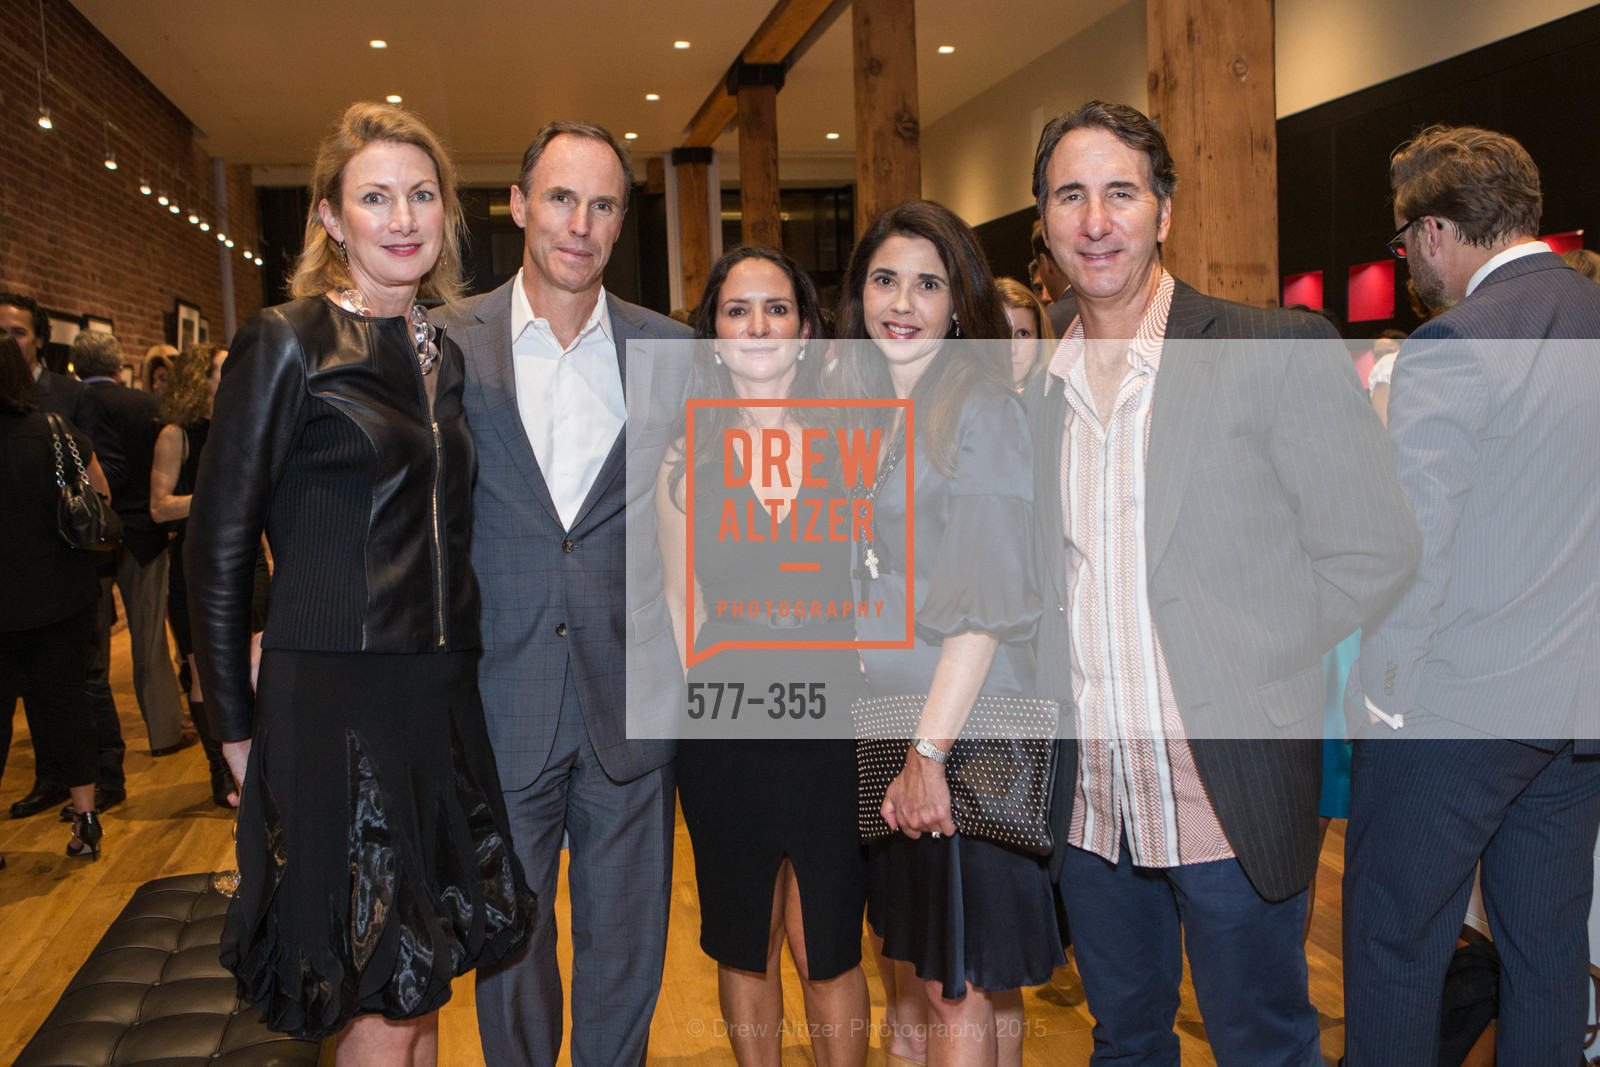 Courtney Dallaire, Candace Cavanaugh, Mario Rodighiero, SFMOMA Contemporary Vision Award Launch Party, Leica. 463 Bush St, October 8th, 2015,Drew Altizer, Drew Altizer Photography, full-service agency, private events, San Francisco photographer, photographer california